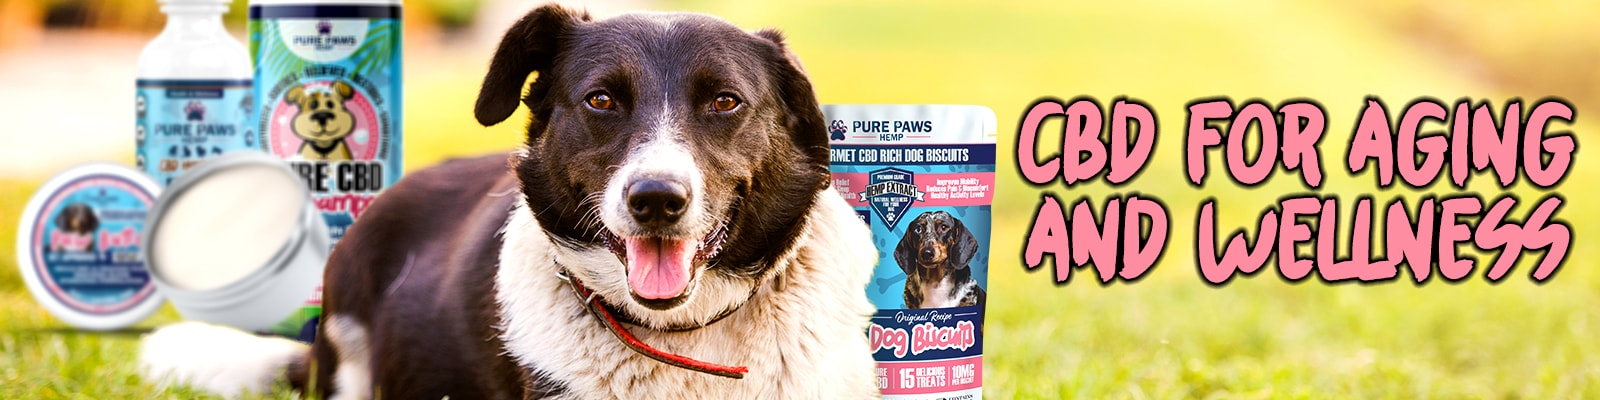 pure paws cbd oil paw buttter and dog treats for aging dogs